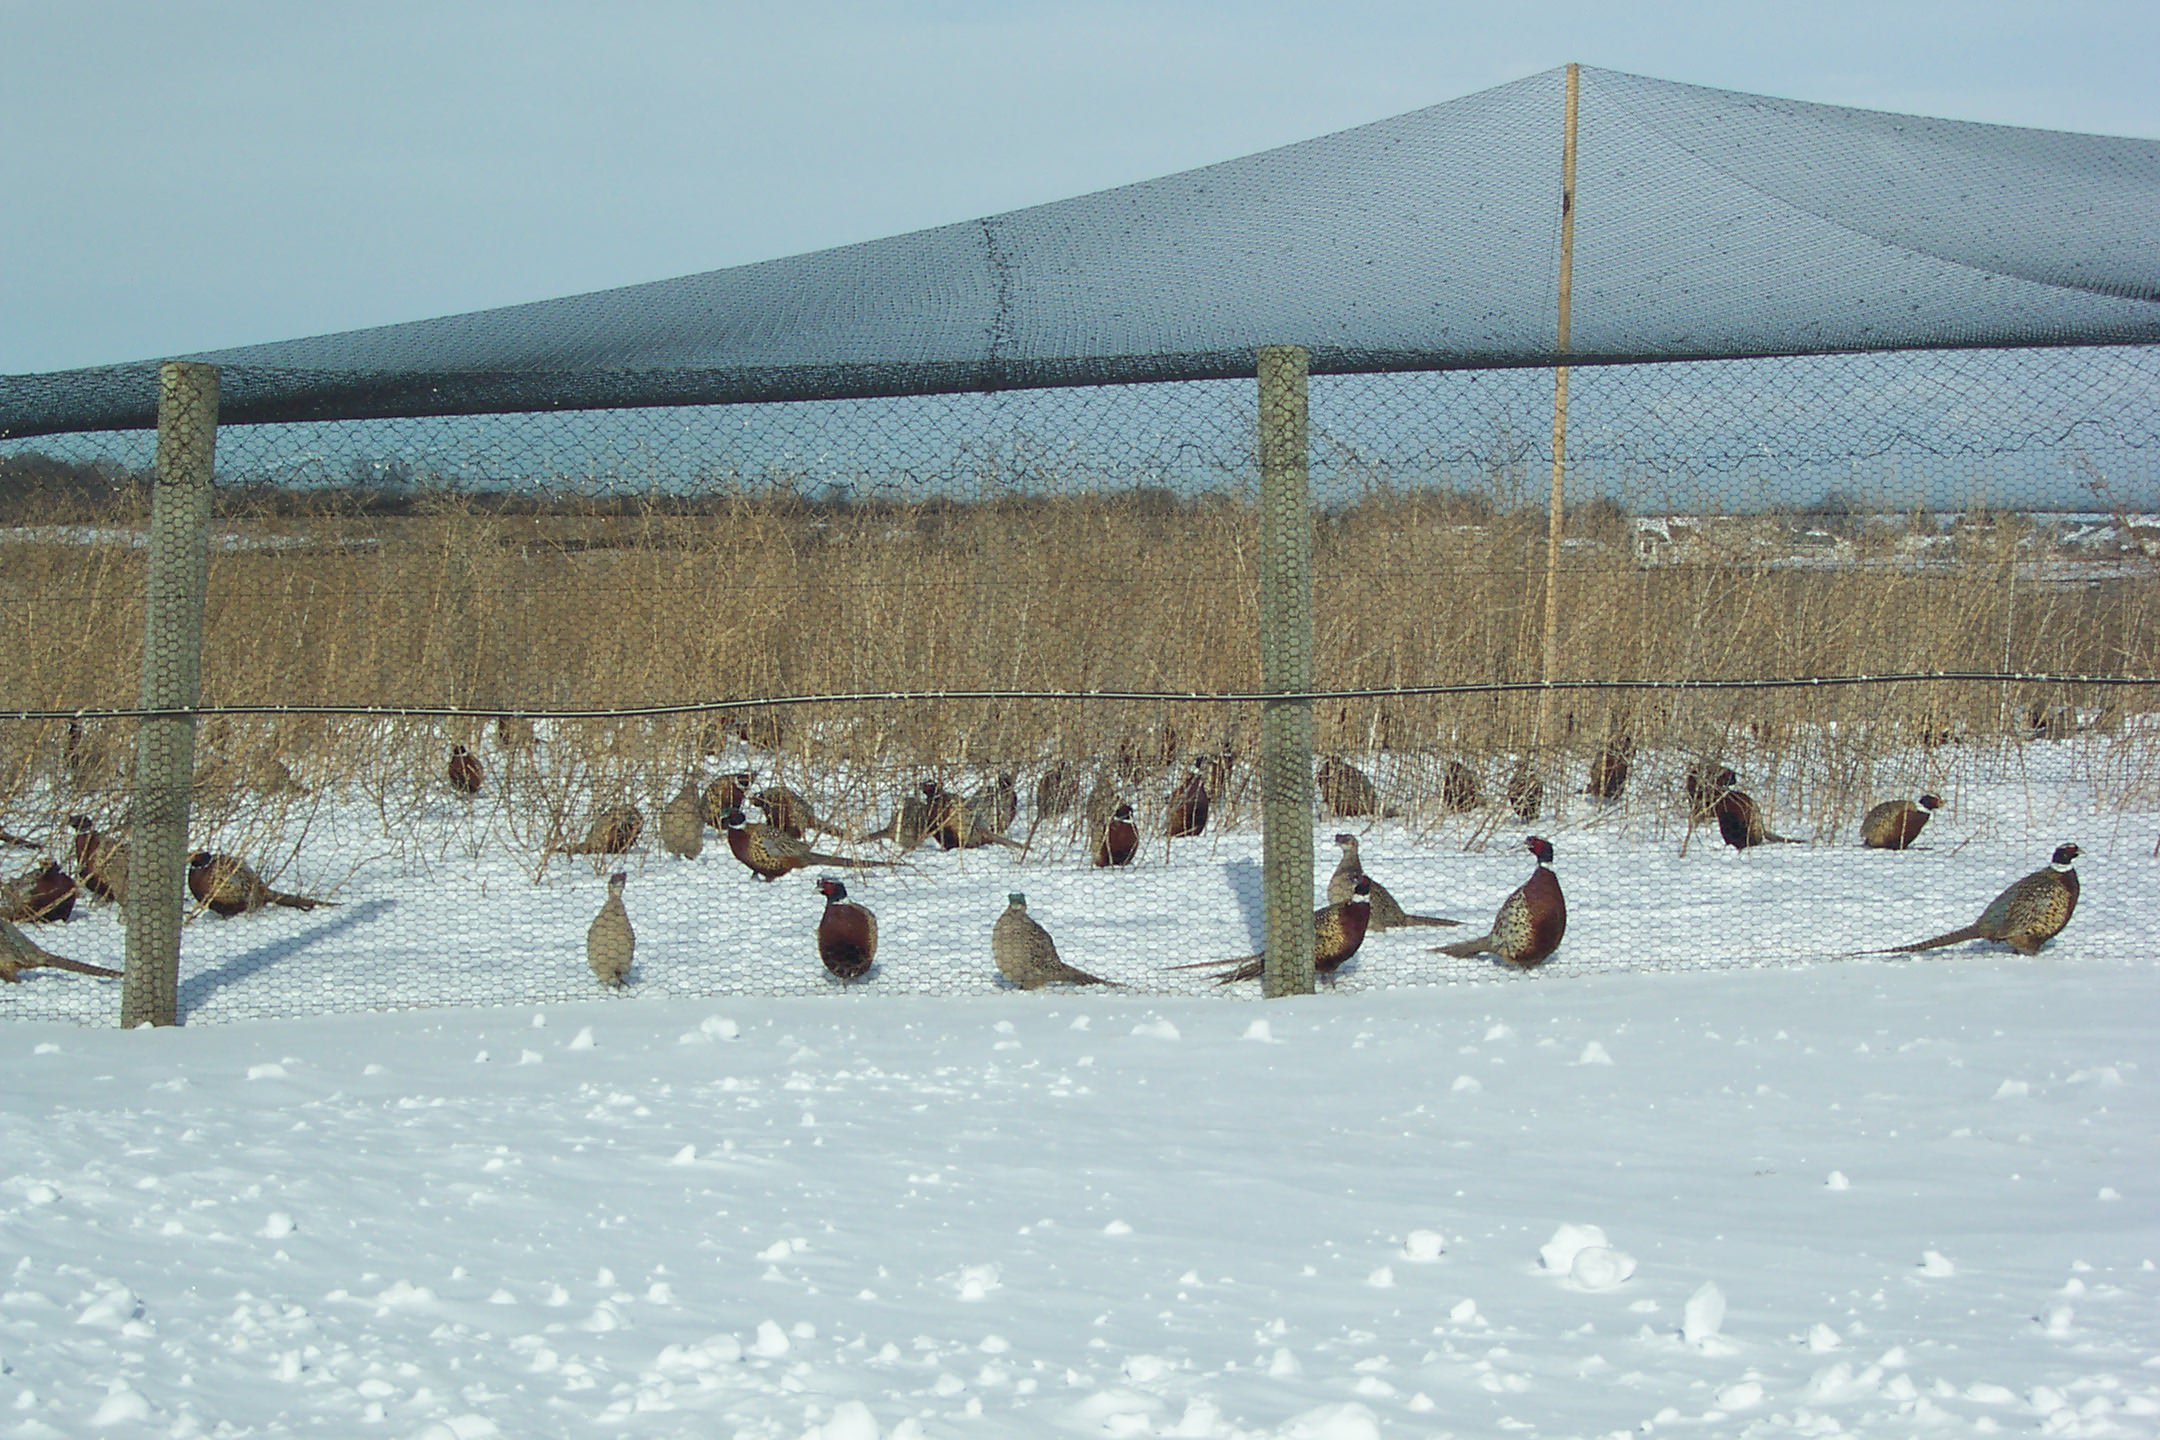 Winterizing Pens Keeps Game Bird Farmers Busy